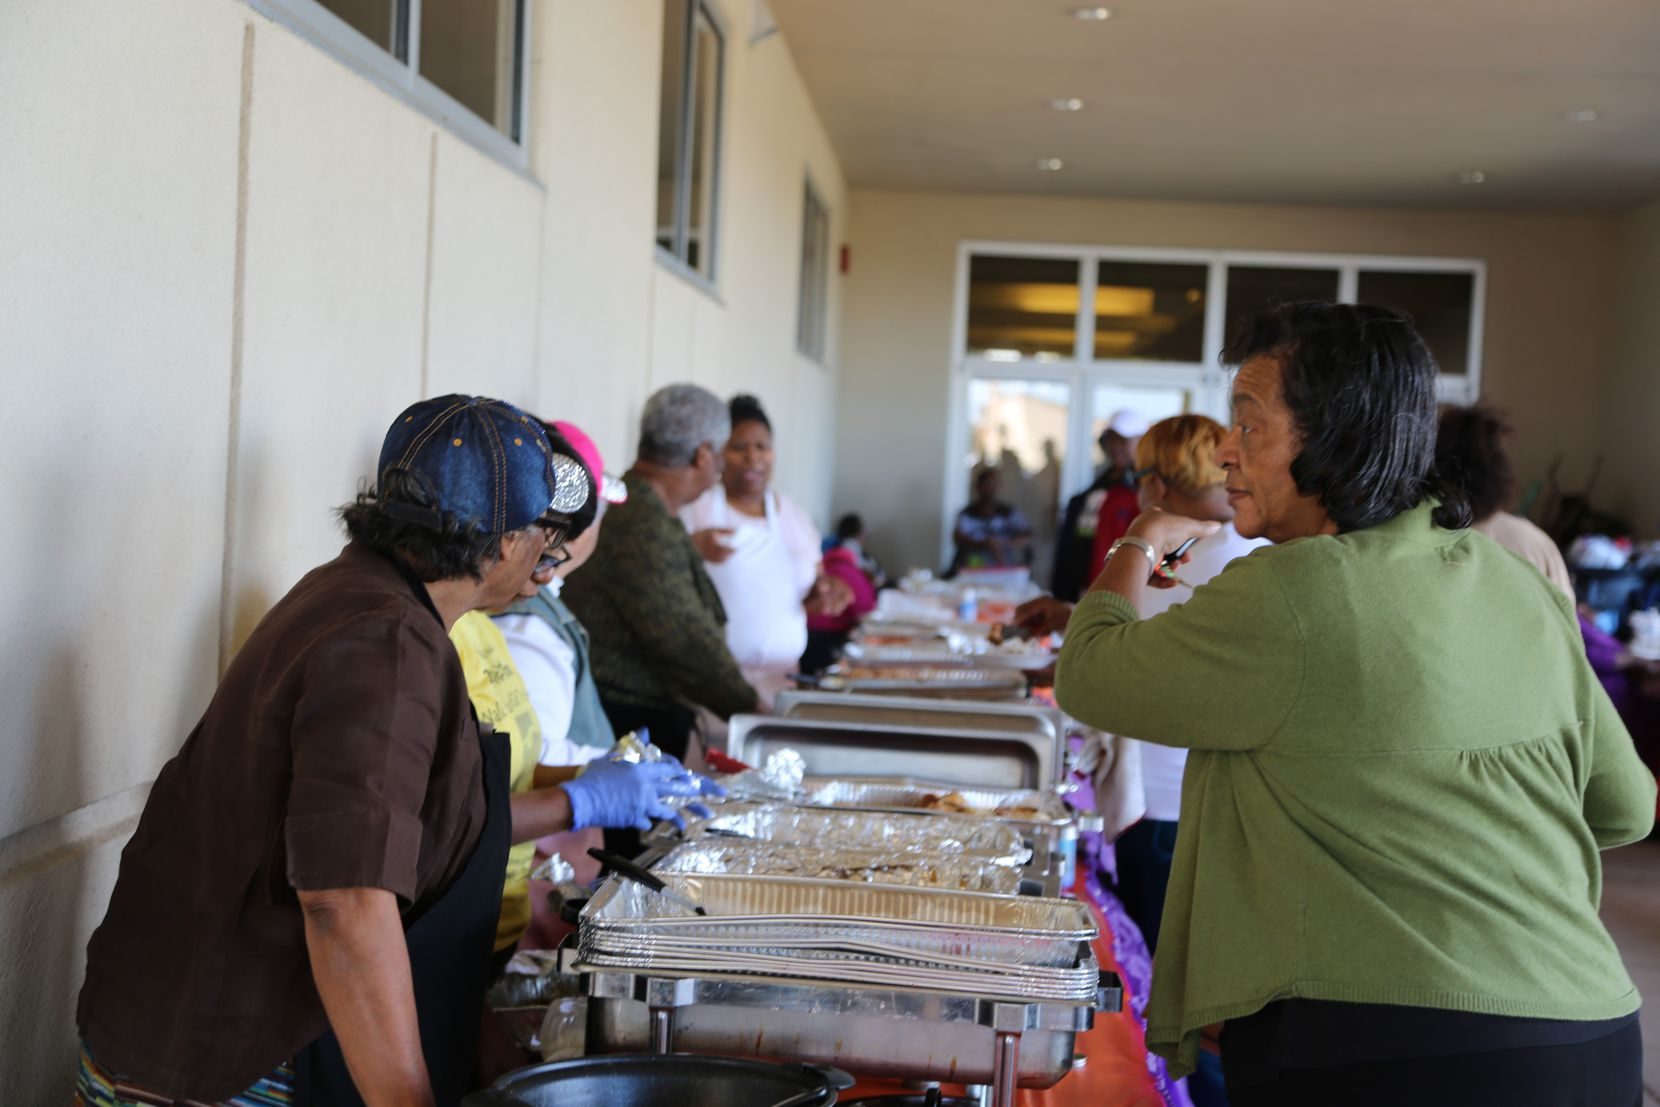 Full Gospel Holy Temple church in South Dallas has a history of serving Sunday meals, called Dinner on the Ground.